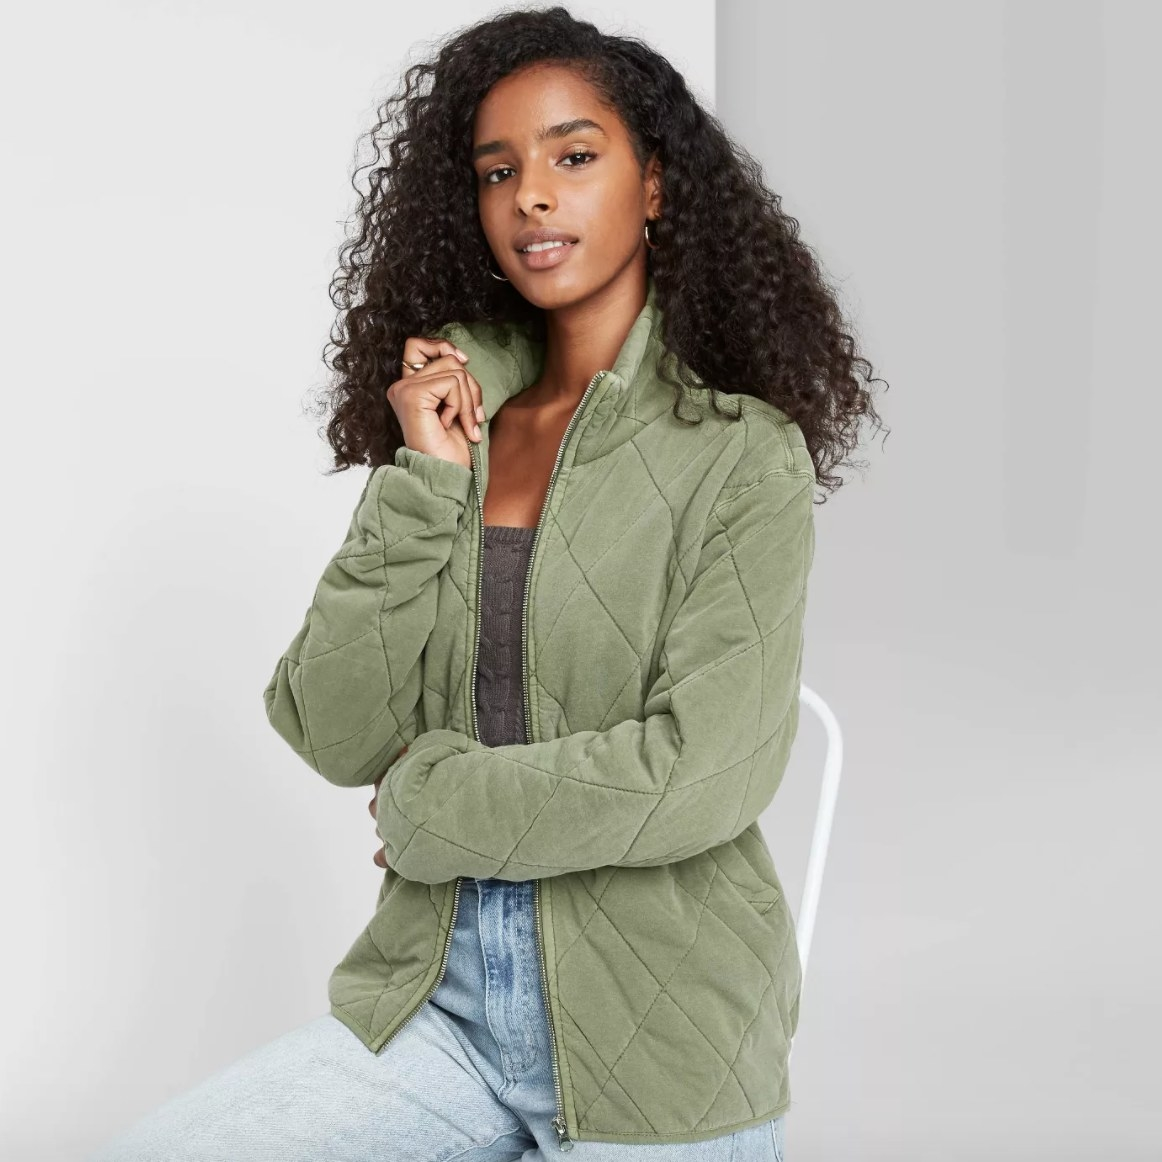 The jacket in the color olive green